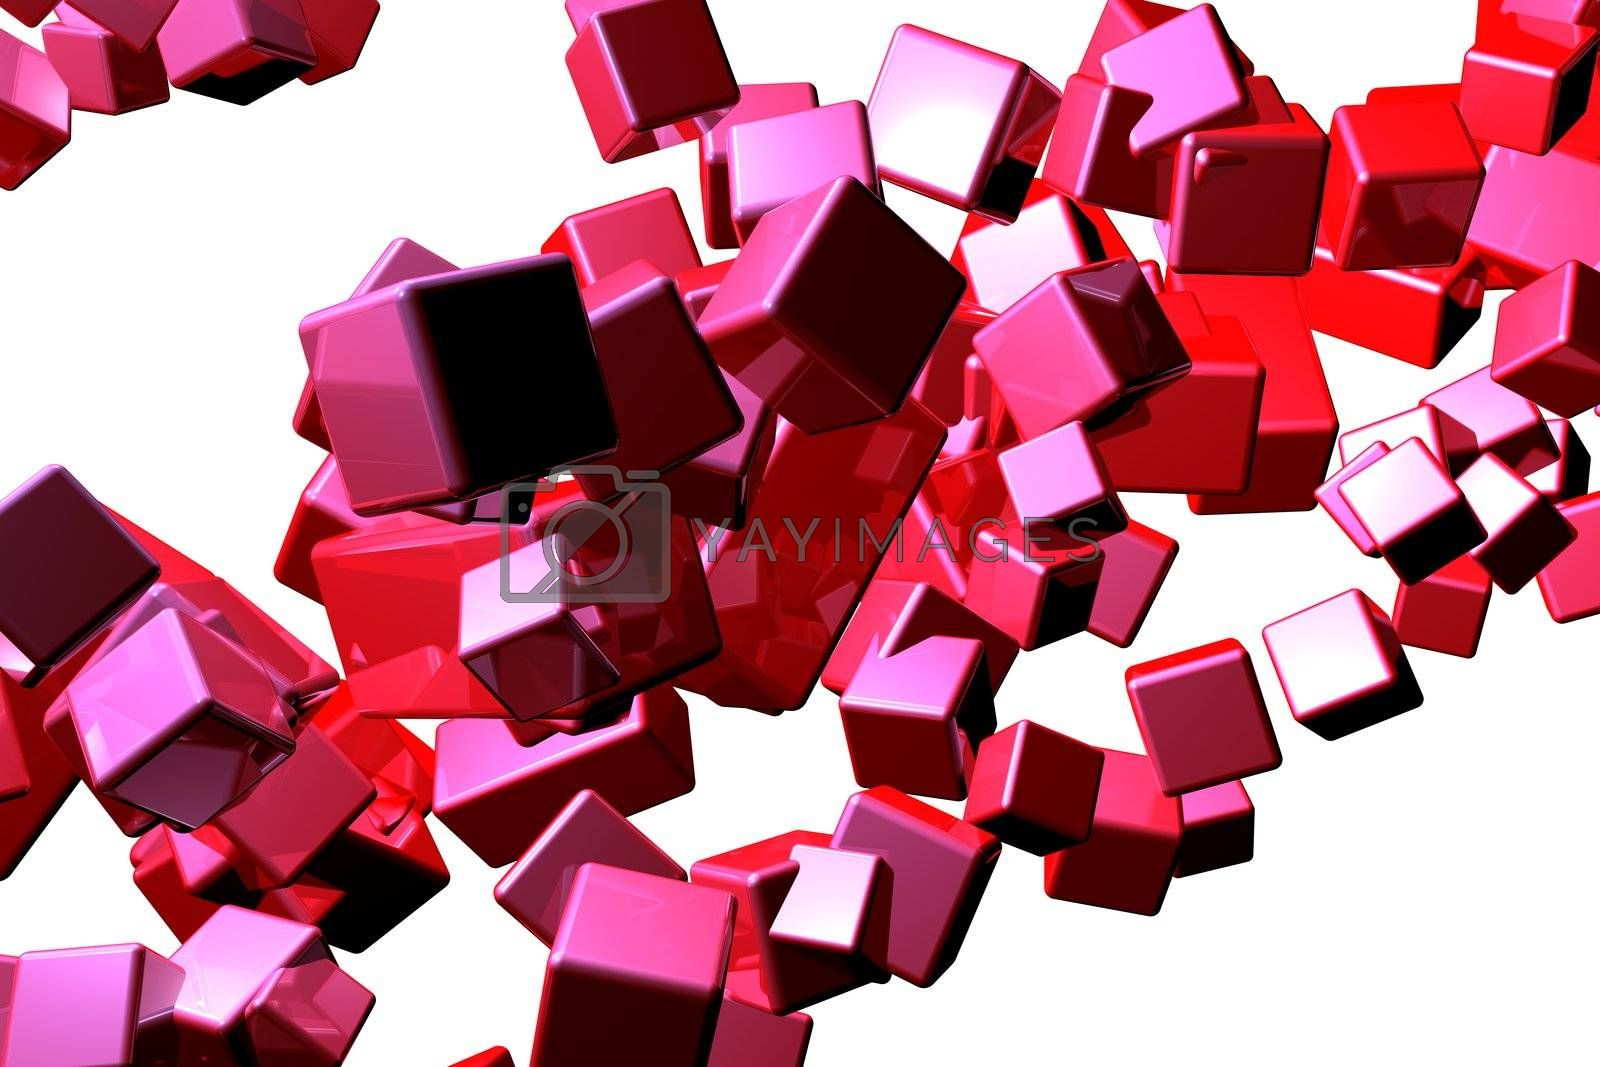 3D rendered abstract background. Isolated on white.